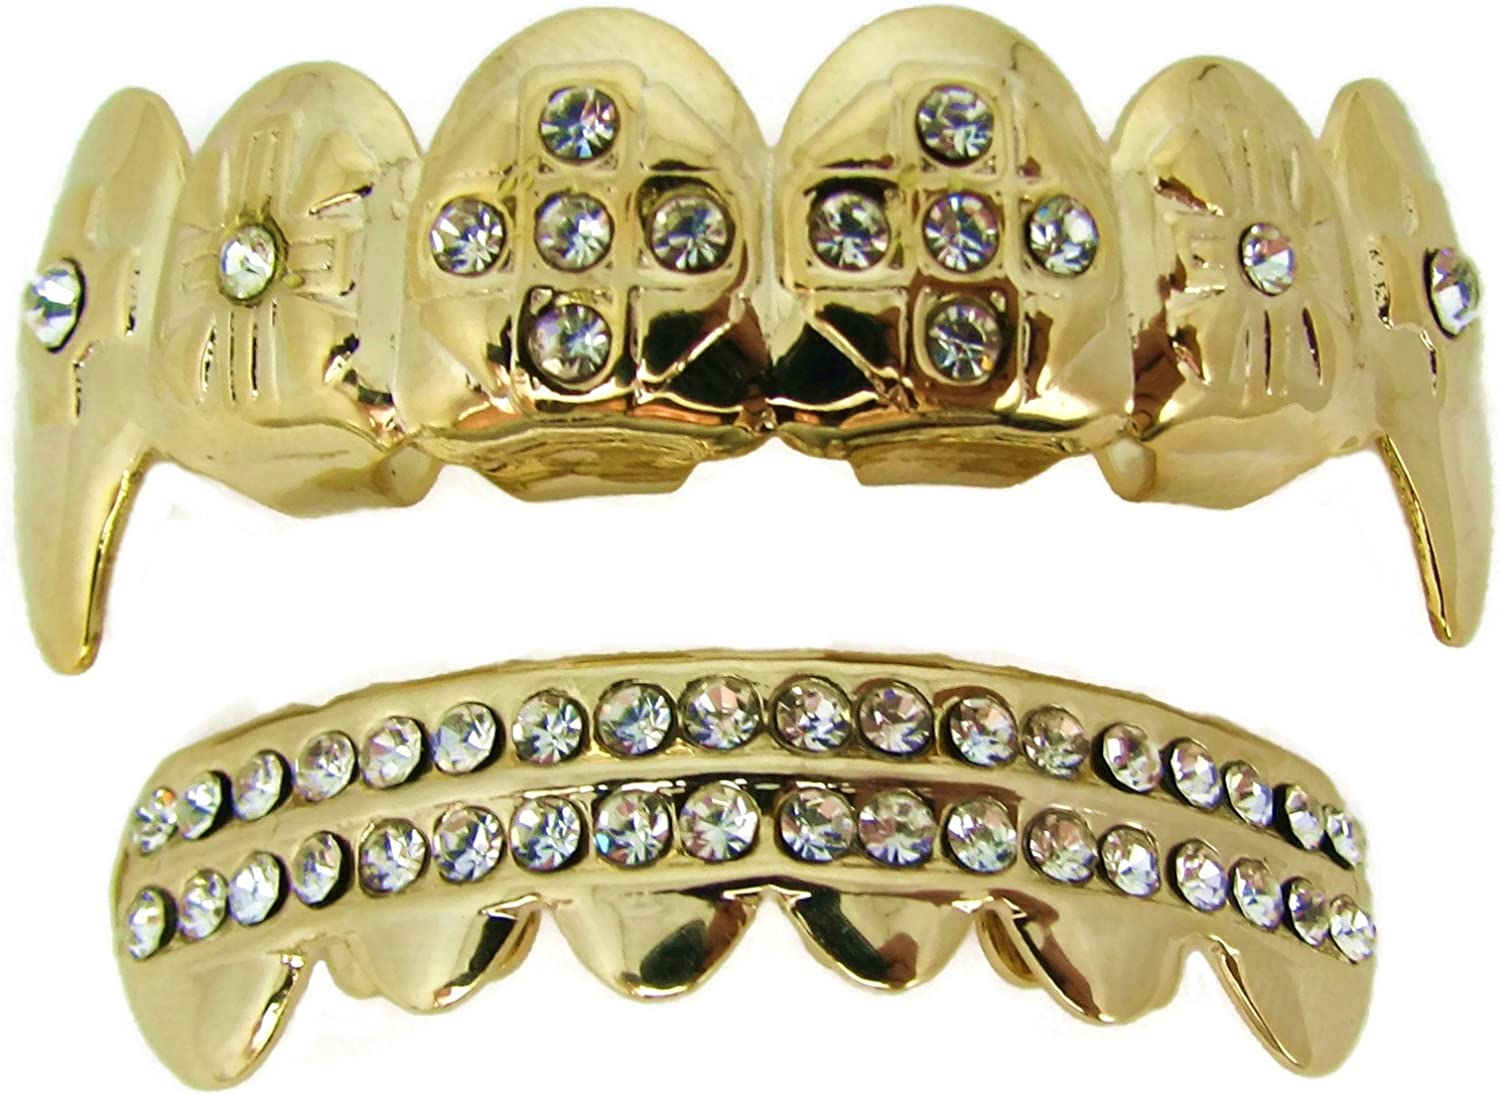 Gold Plated Vampire Fang Teeth Cross Grillz Top and Bottom Grills Set